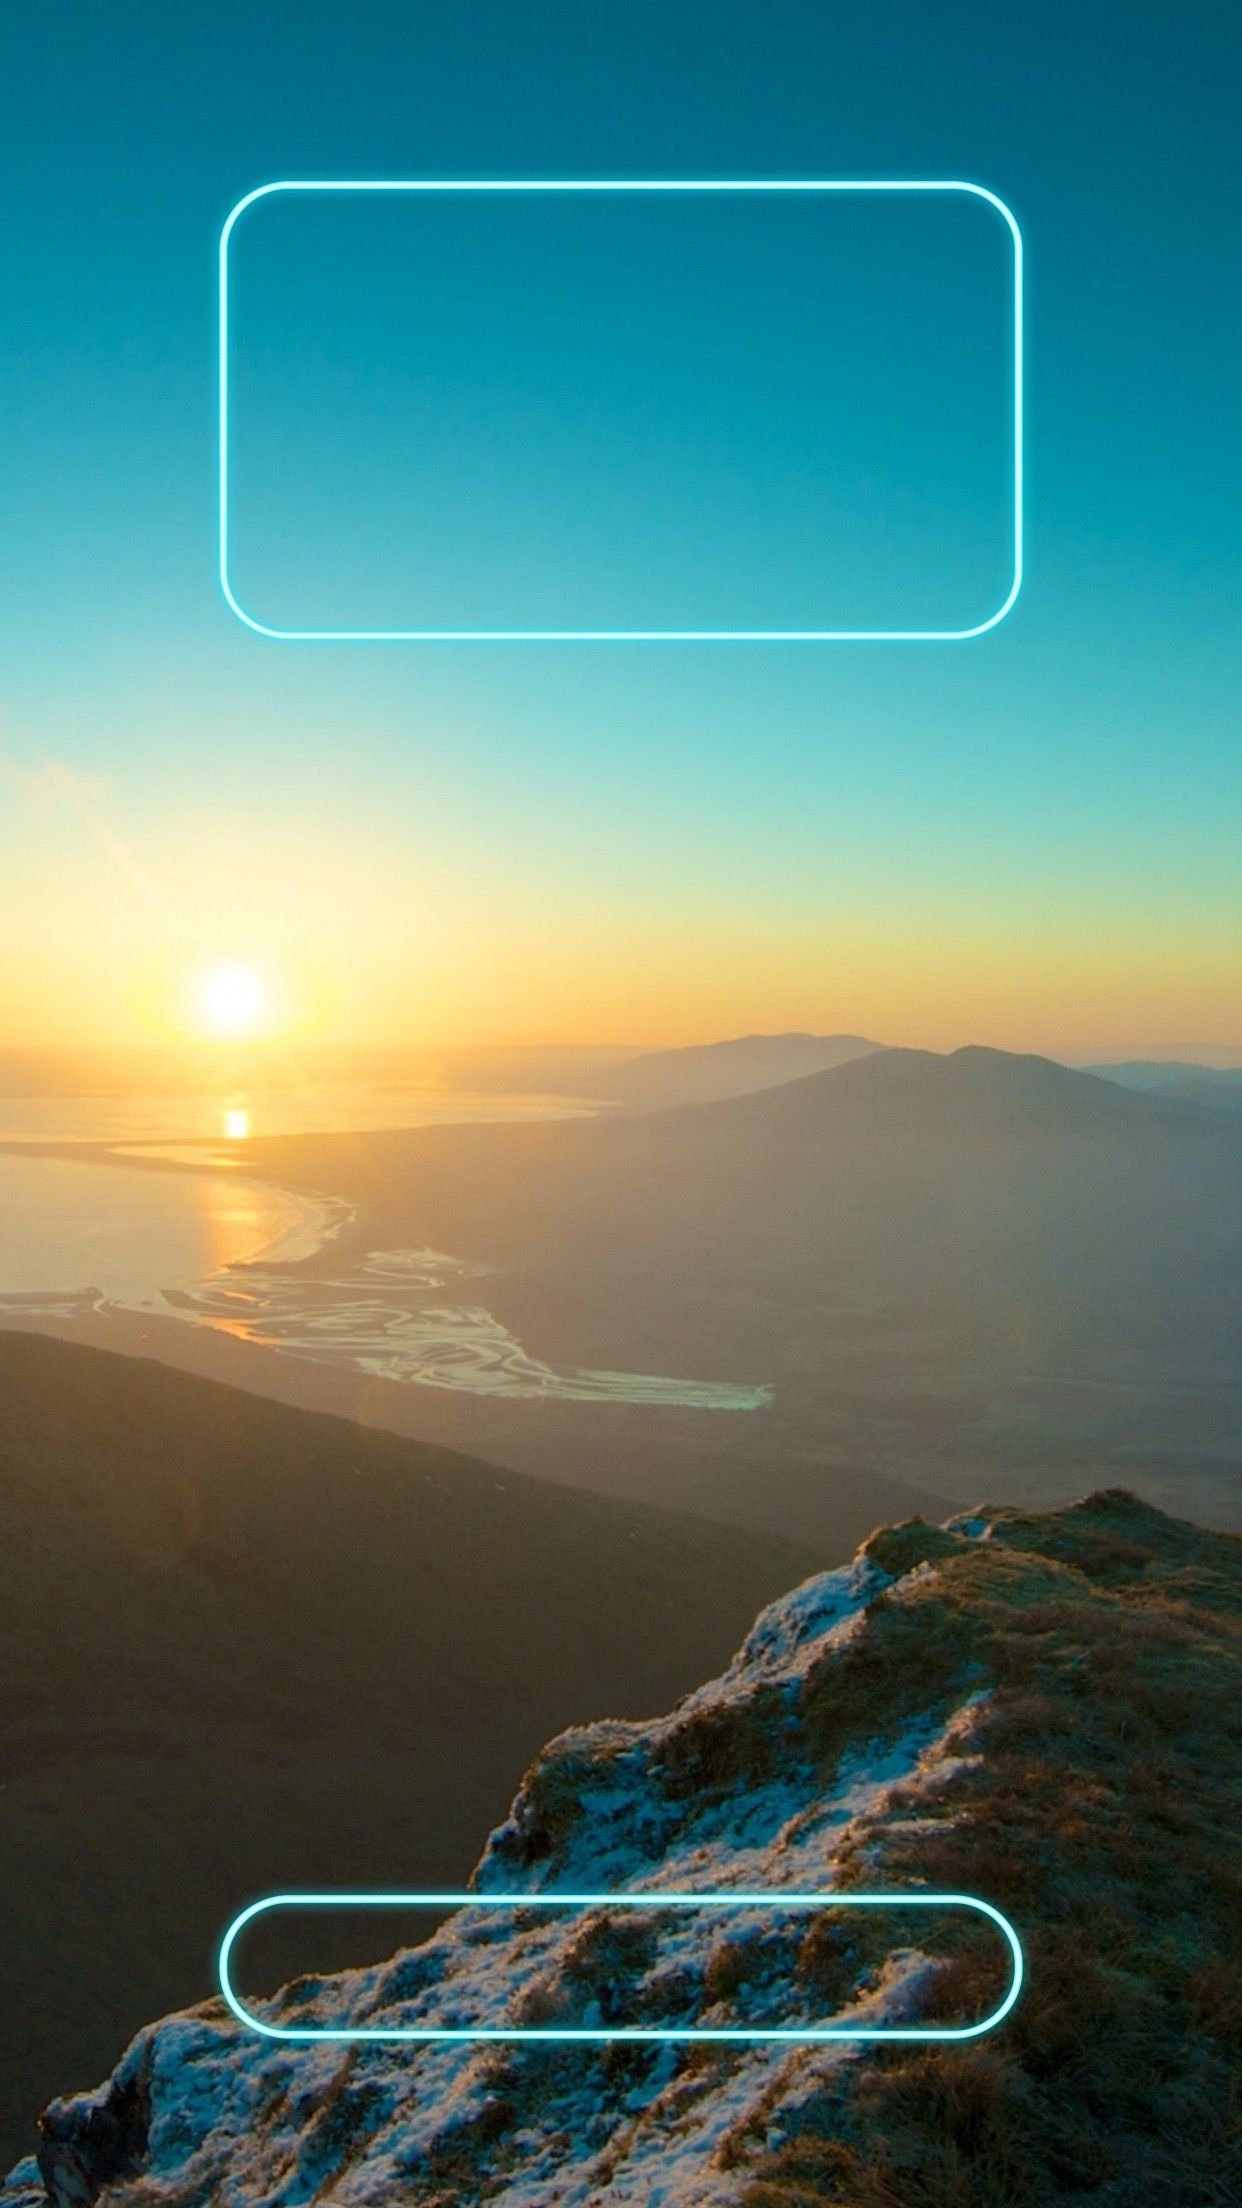 Shinee Wallpaper Iphone 15 Wallpapers With Nature Views For The Iphone 6 Plus